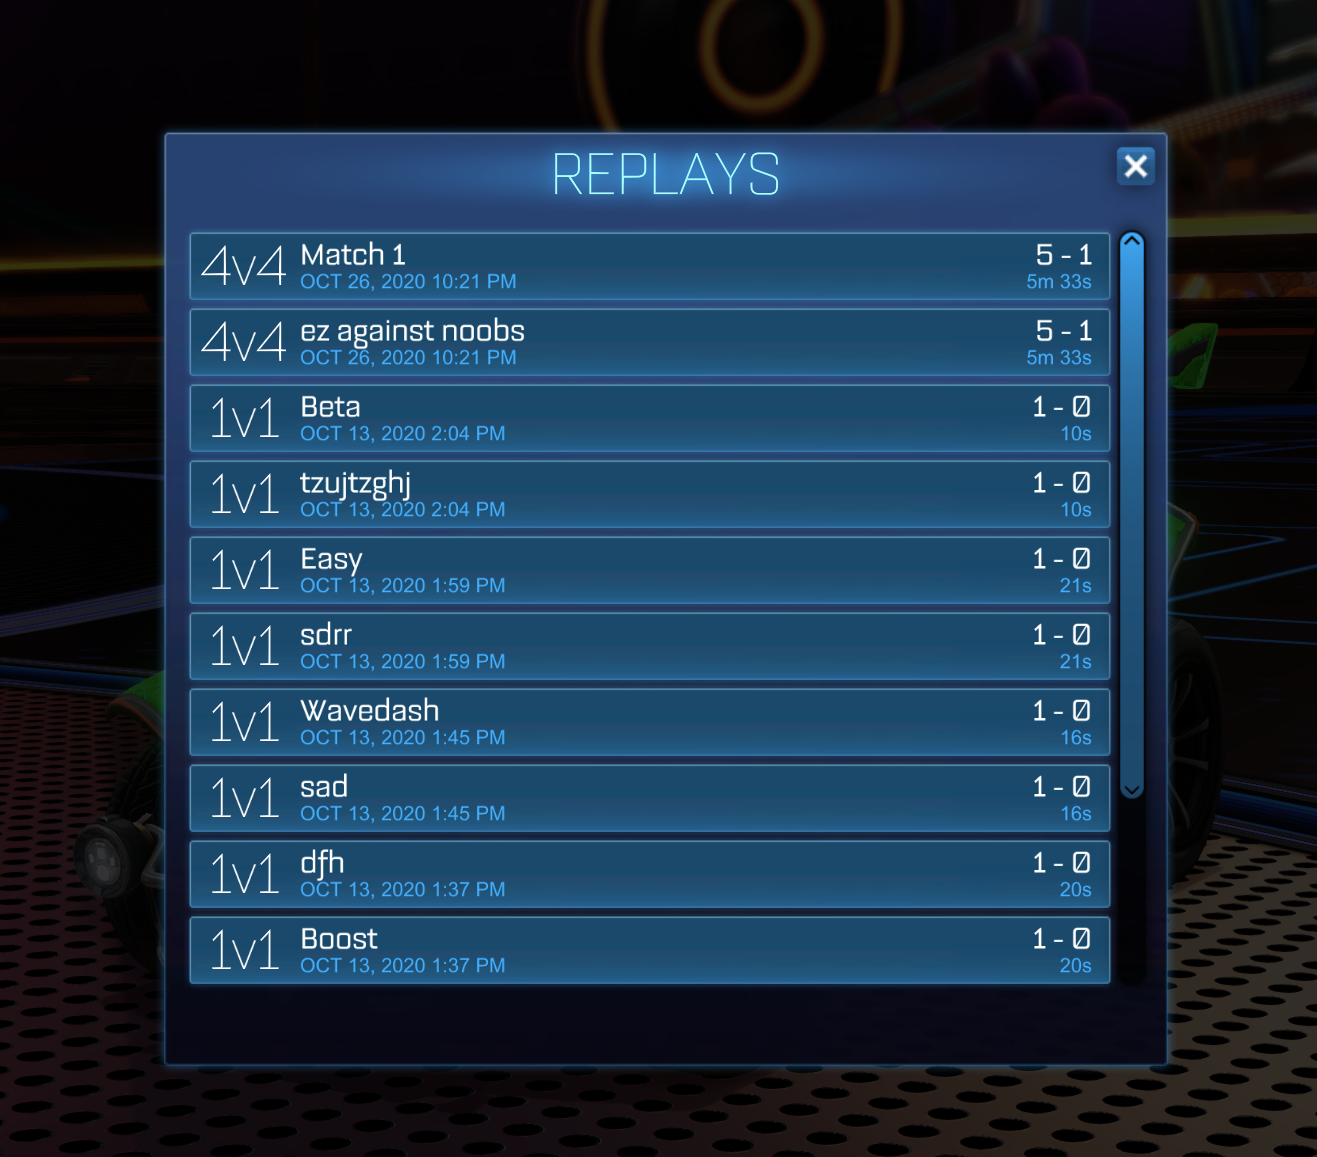 Rocket League how to find replays